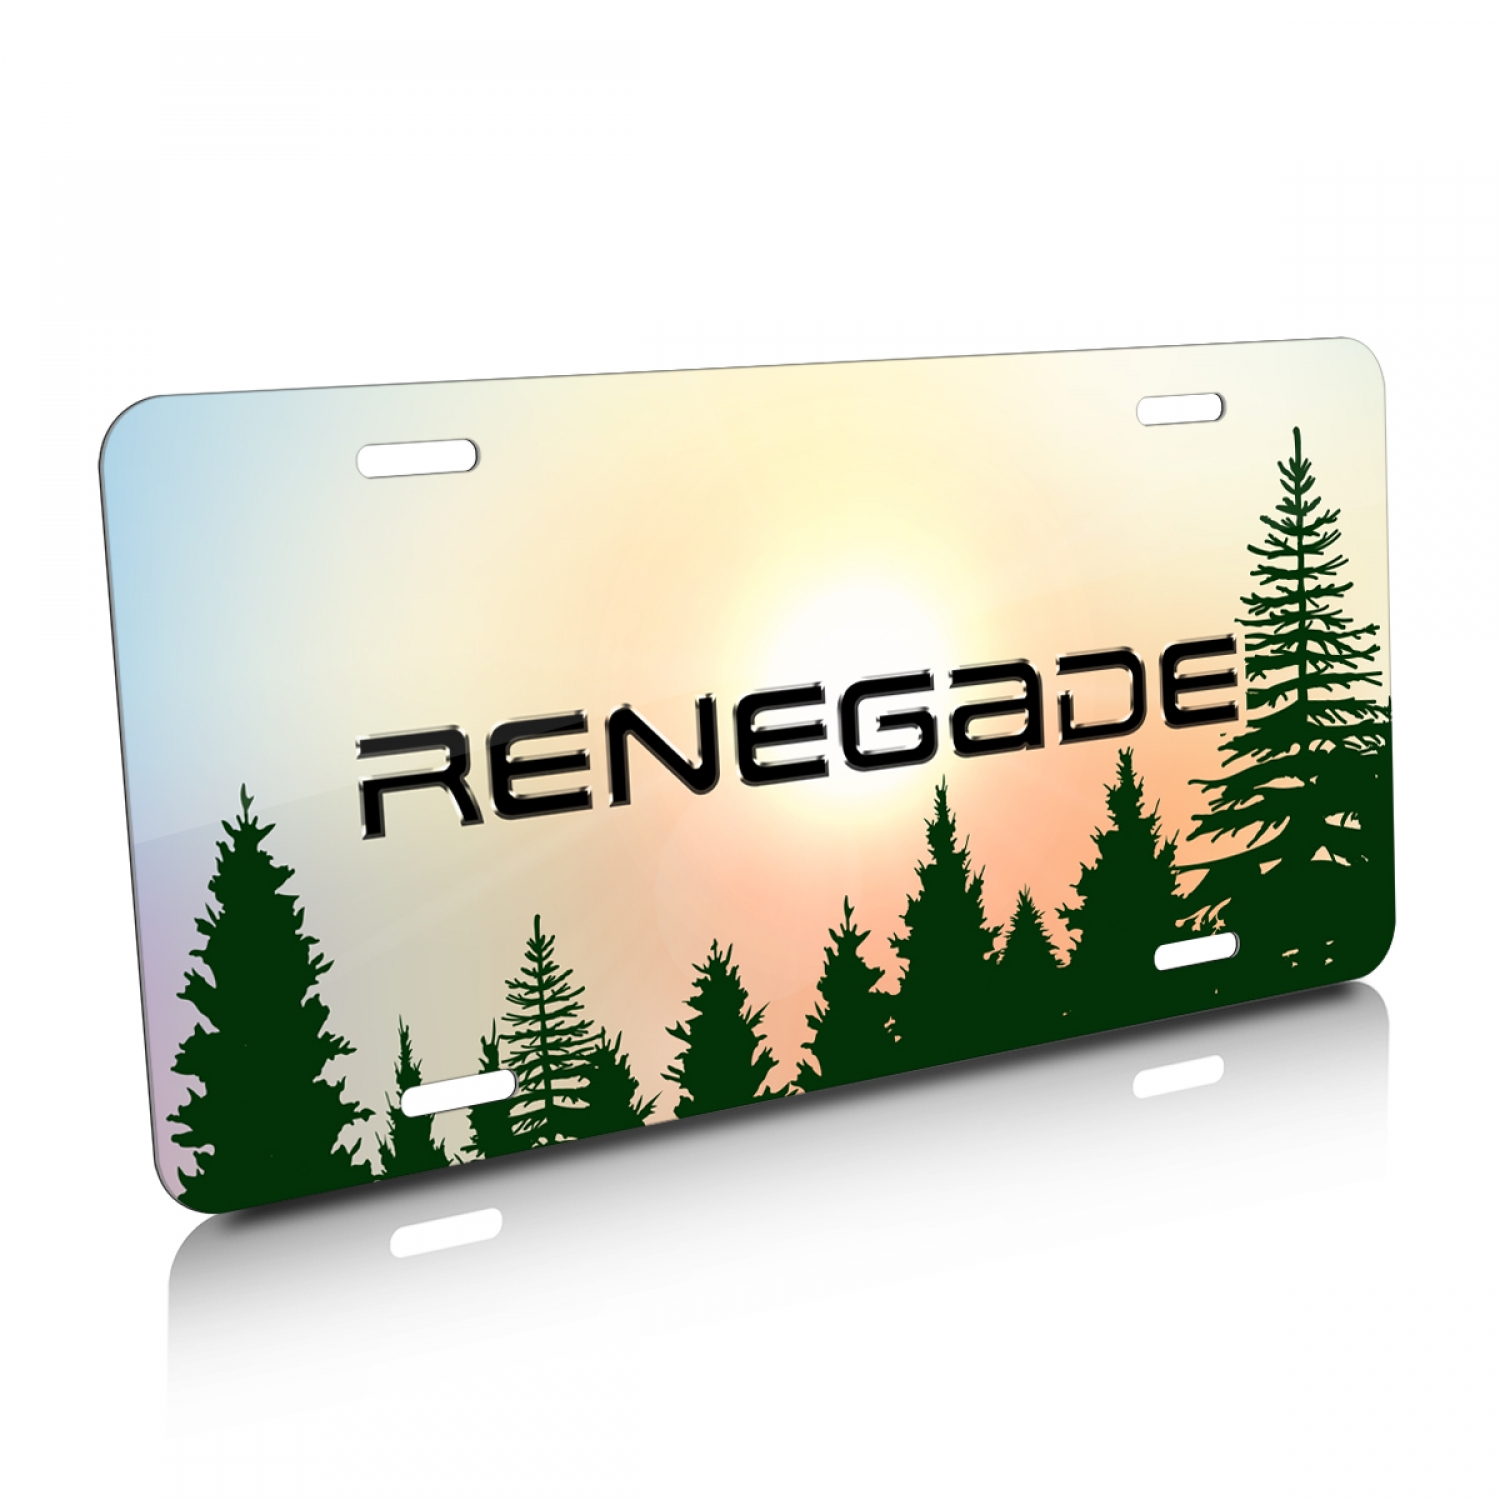 Jeep Renegade Green Forrest Sillhouette Graphic Aluminum License Plate